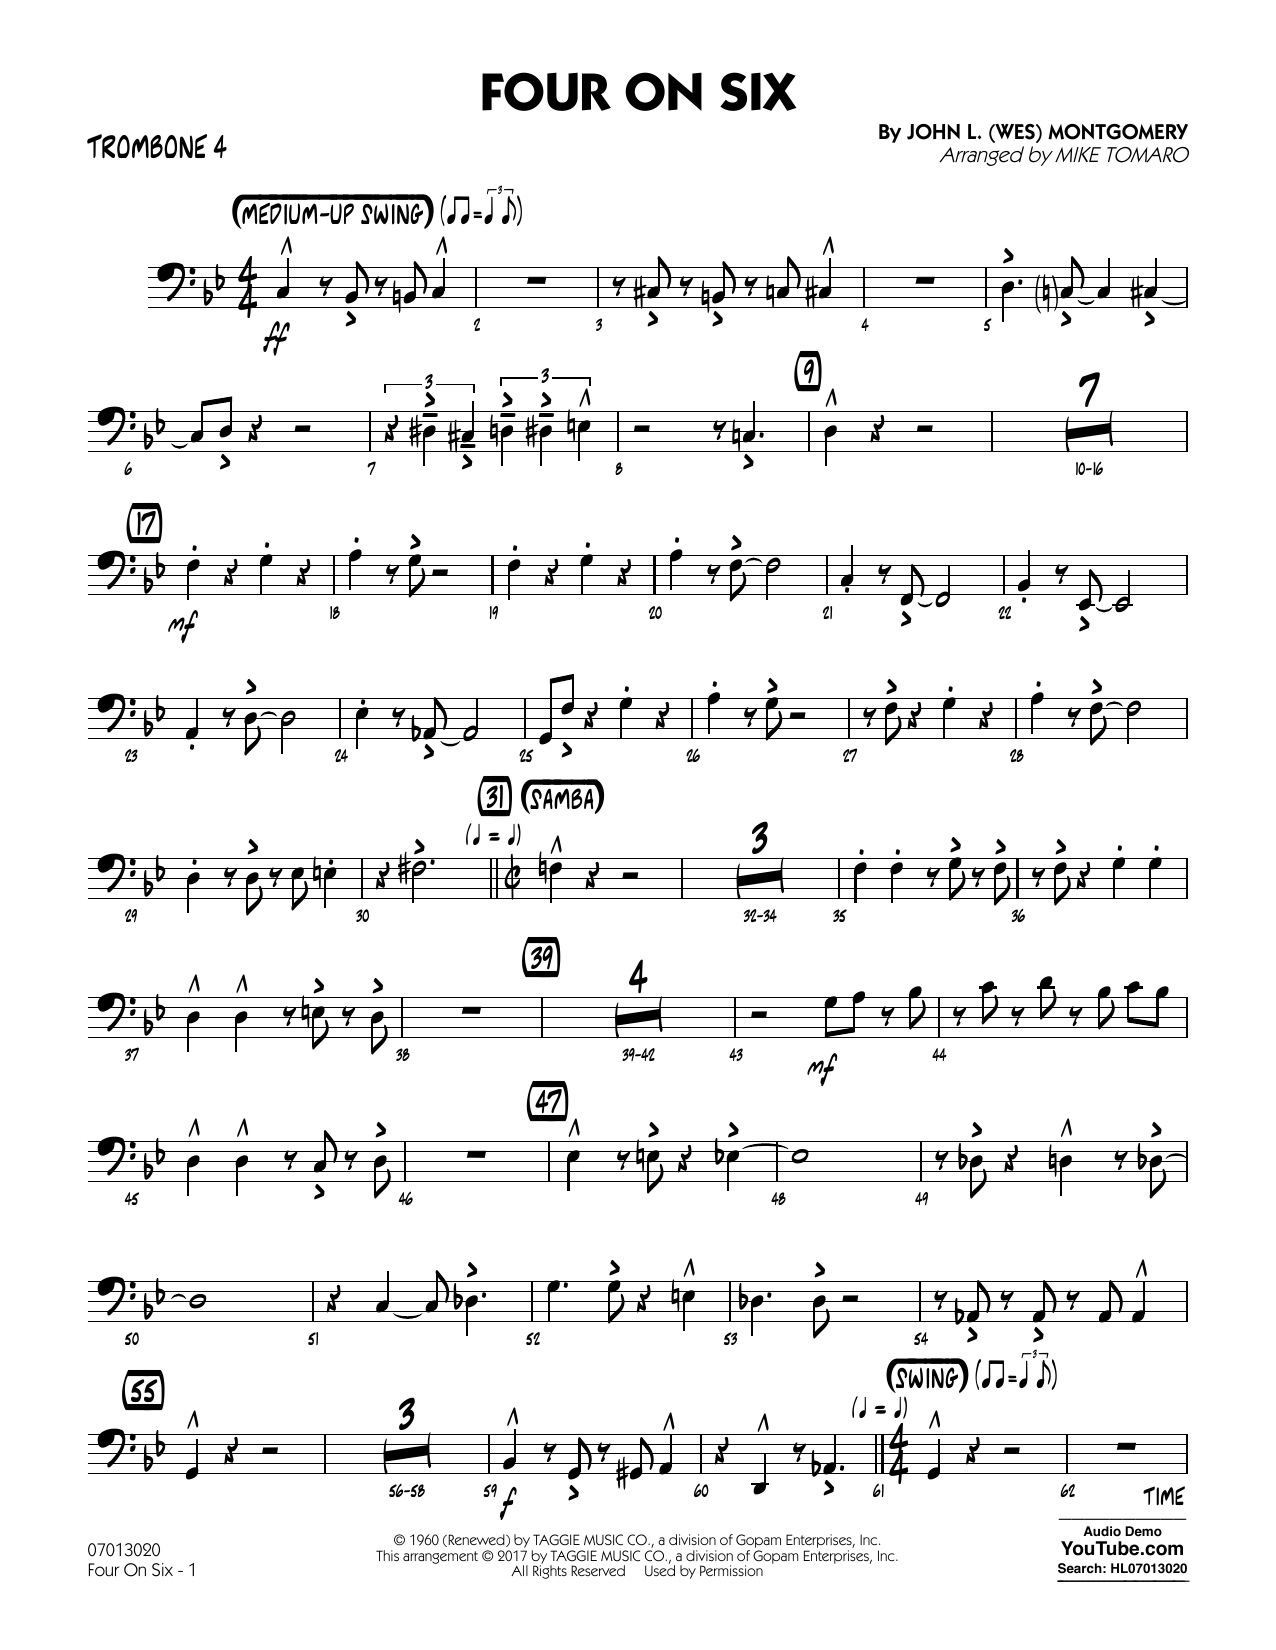 Mike Tomaro Four on Six - Trombone 4 sheet music notes and chords. Download Printable PDF.